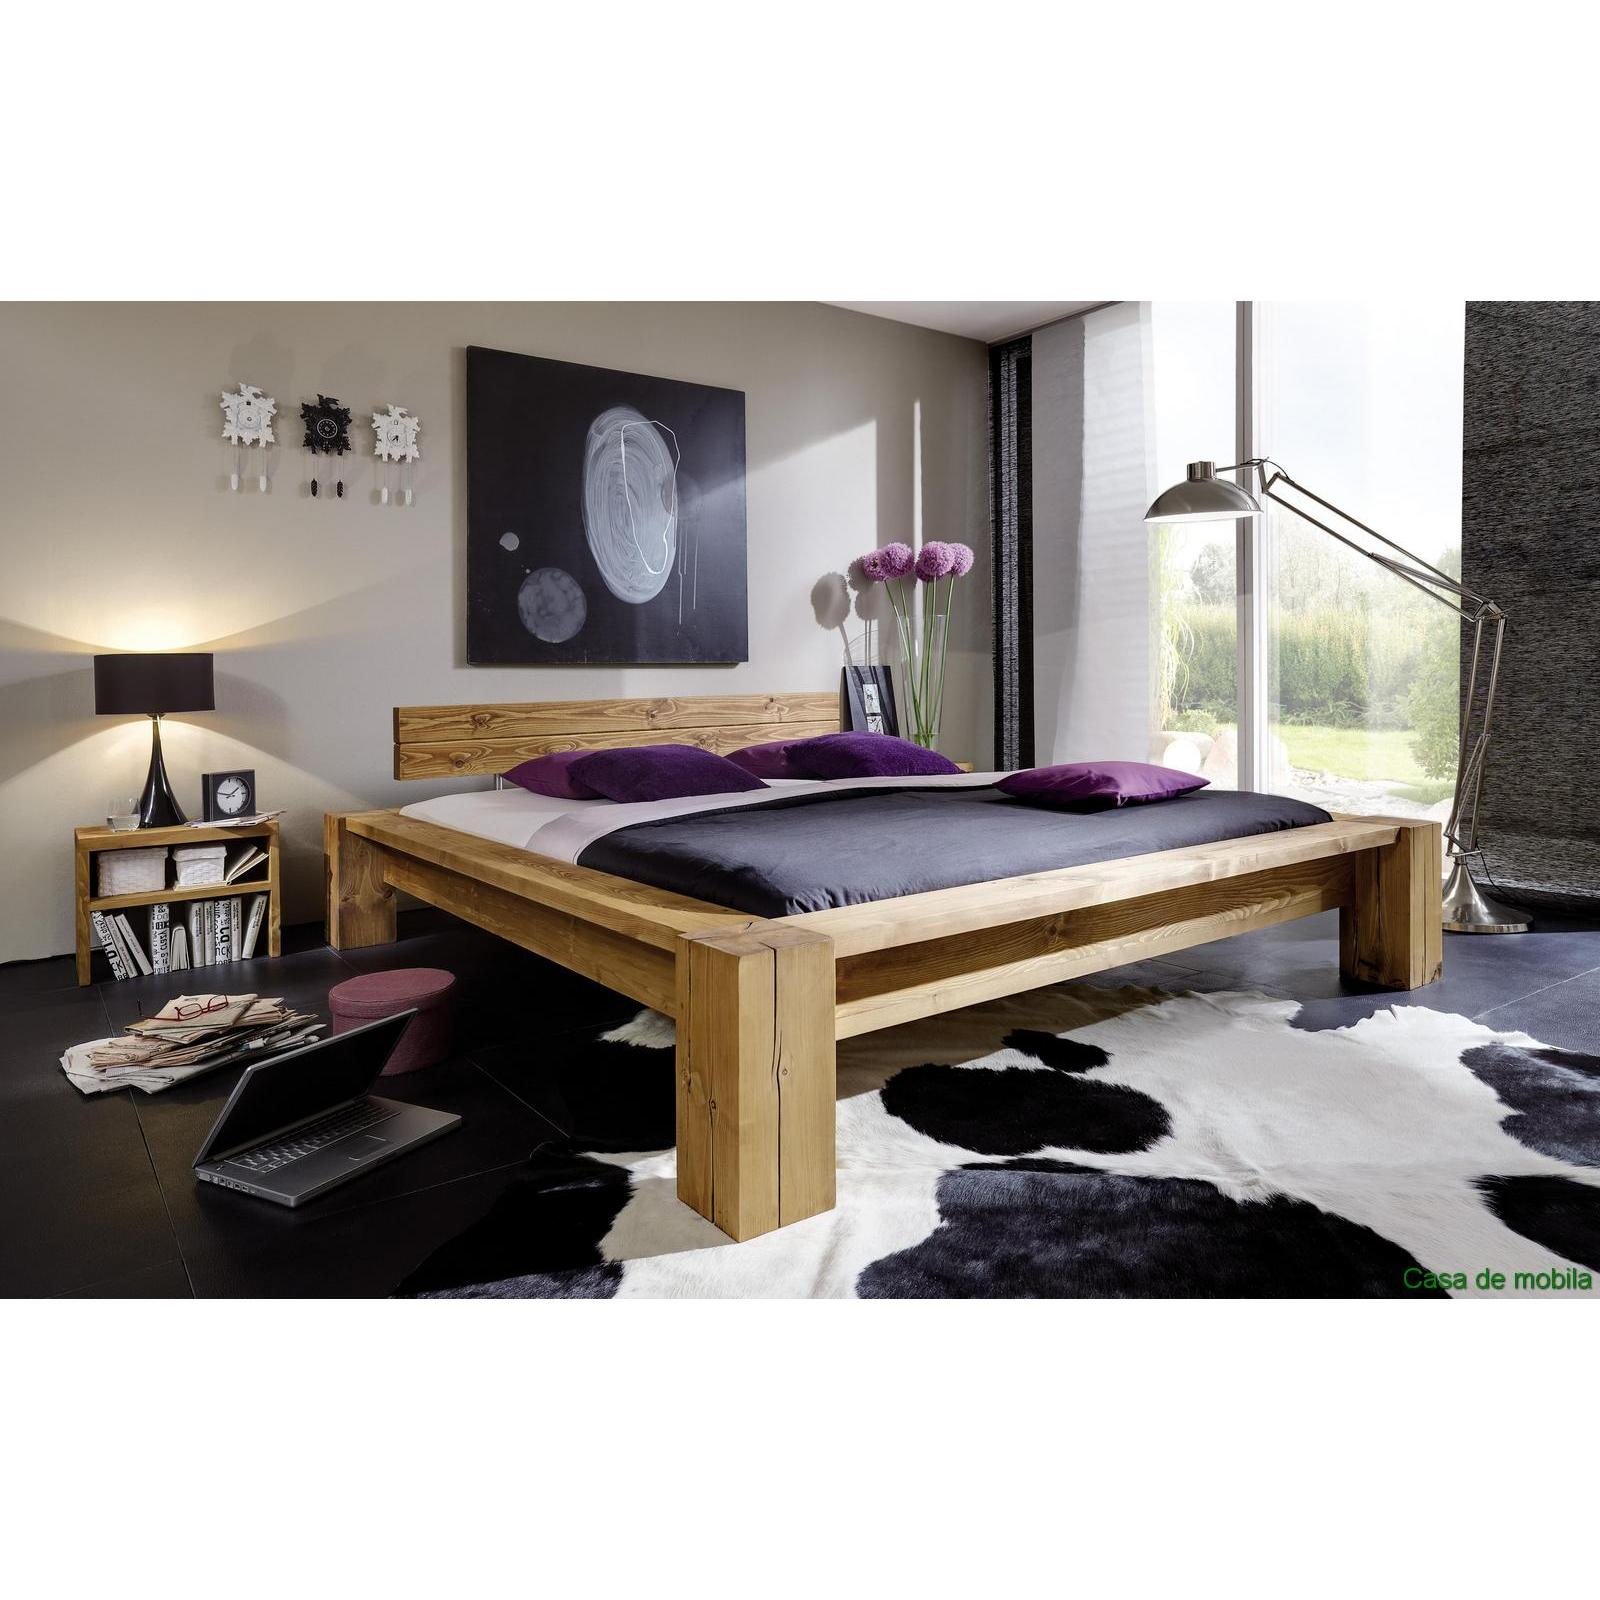 balkenbetten kiefer massiv holz antik gewachst taiga doppelbett 160x200. Black Bedroom Furniture Sets. Home Design Ideas